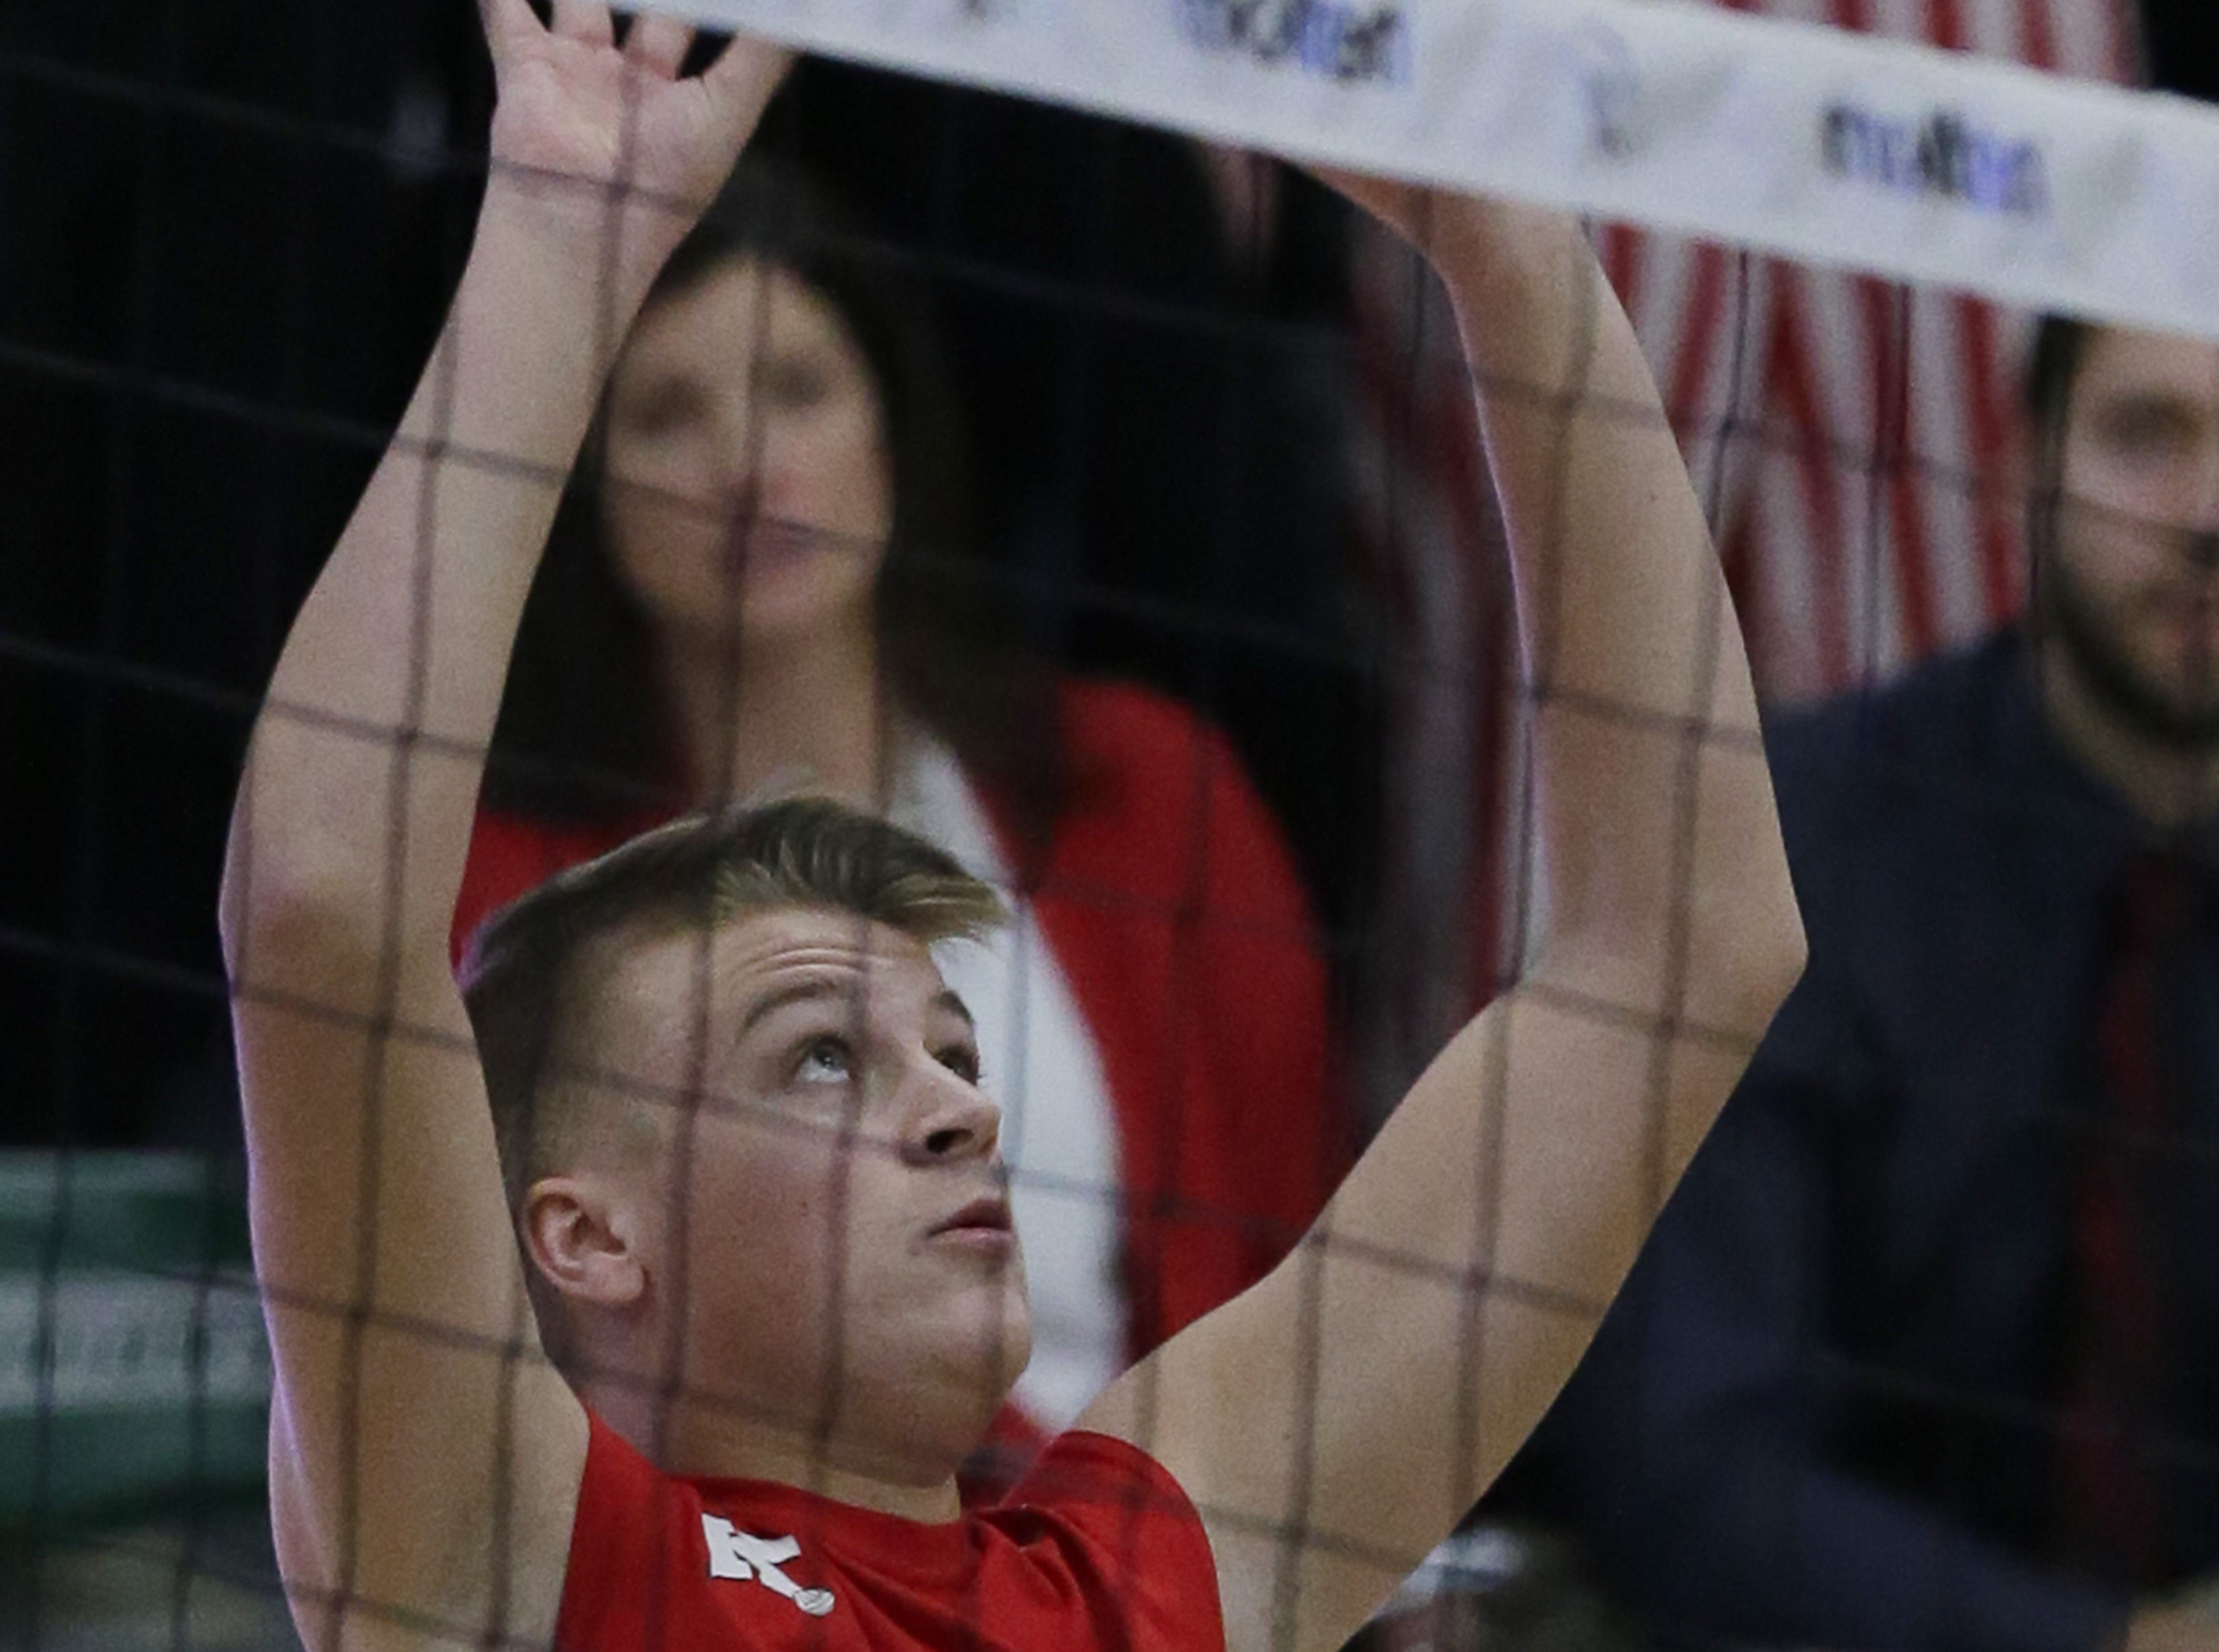 Kimberly's Tommy Clausz sets the ball during their game.  Kimberly Papermakers played Germantown Warhawks in Division 1 WIAA State Boys Volleyball Championship, Saturday, November 10, 2018 at Wisconsin Lutheran College in Milwaukee, Wis. Joe Sienkiewicz/USA Today NETWORK-Wisconsin